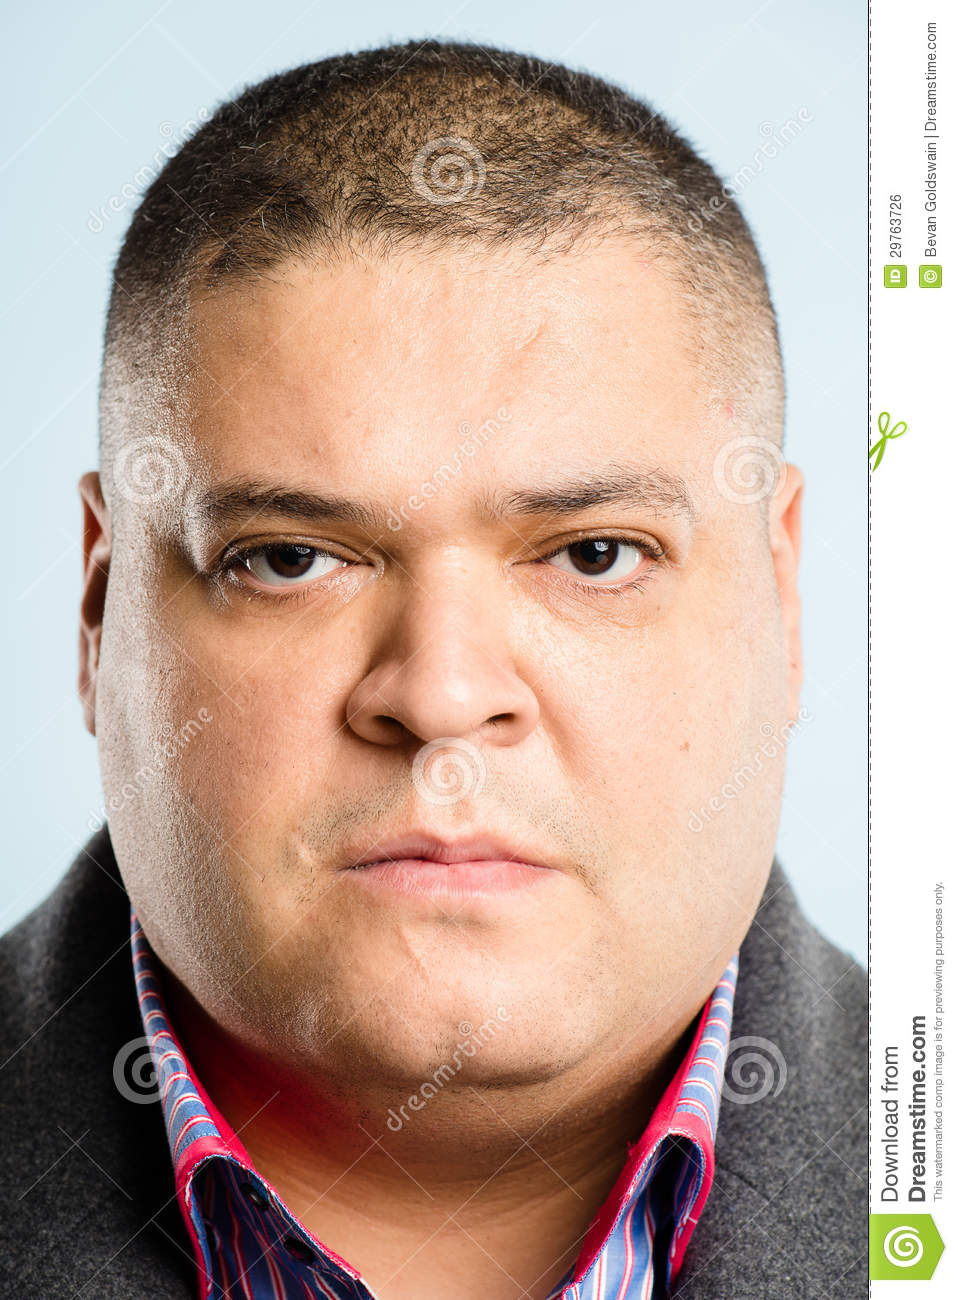 Serious Man Portrait Real People High Definition Blue